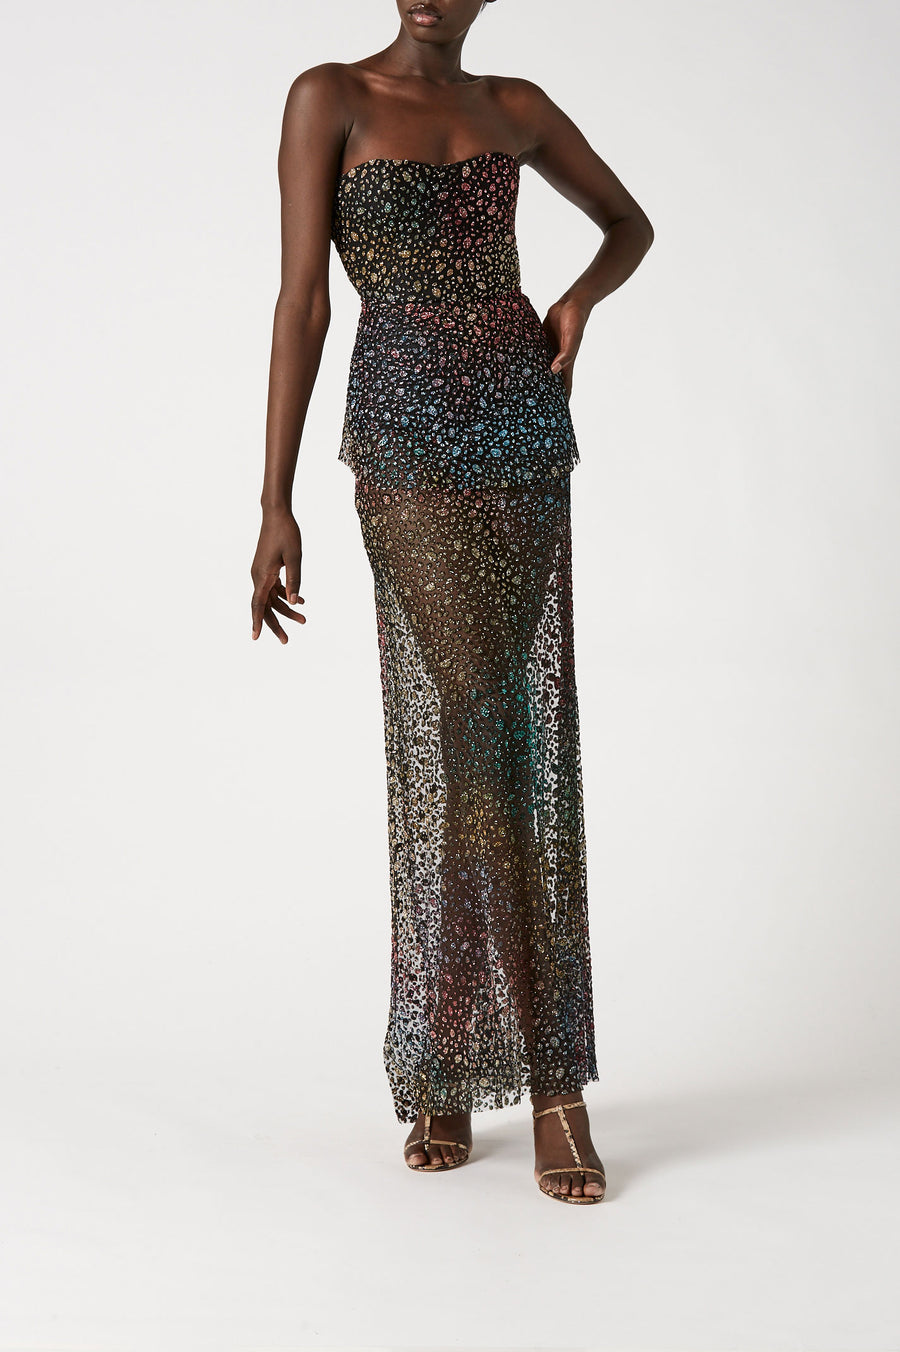 Indulge in high-impact glamour with our glitter gown